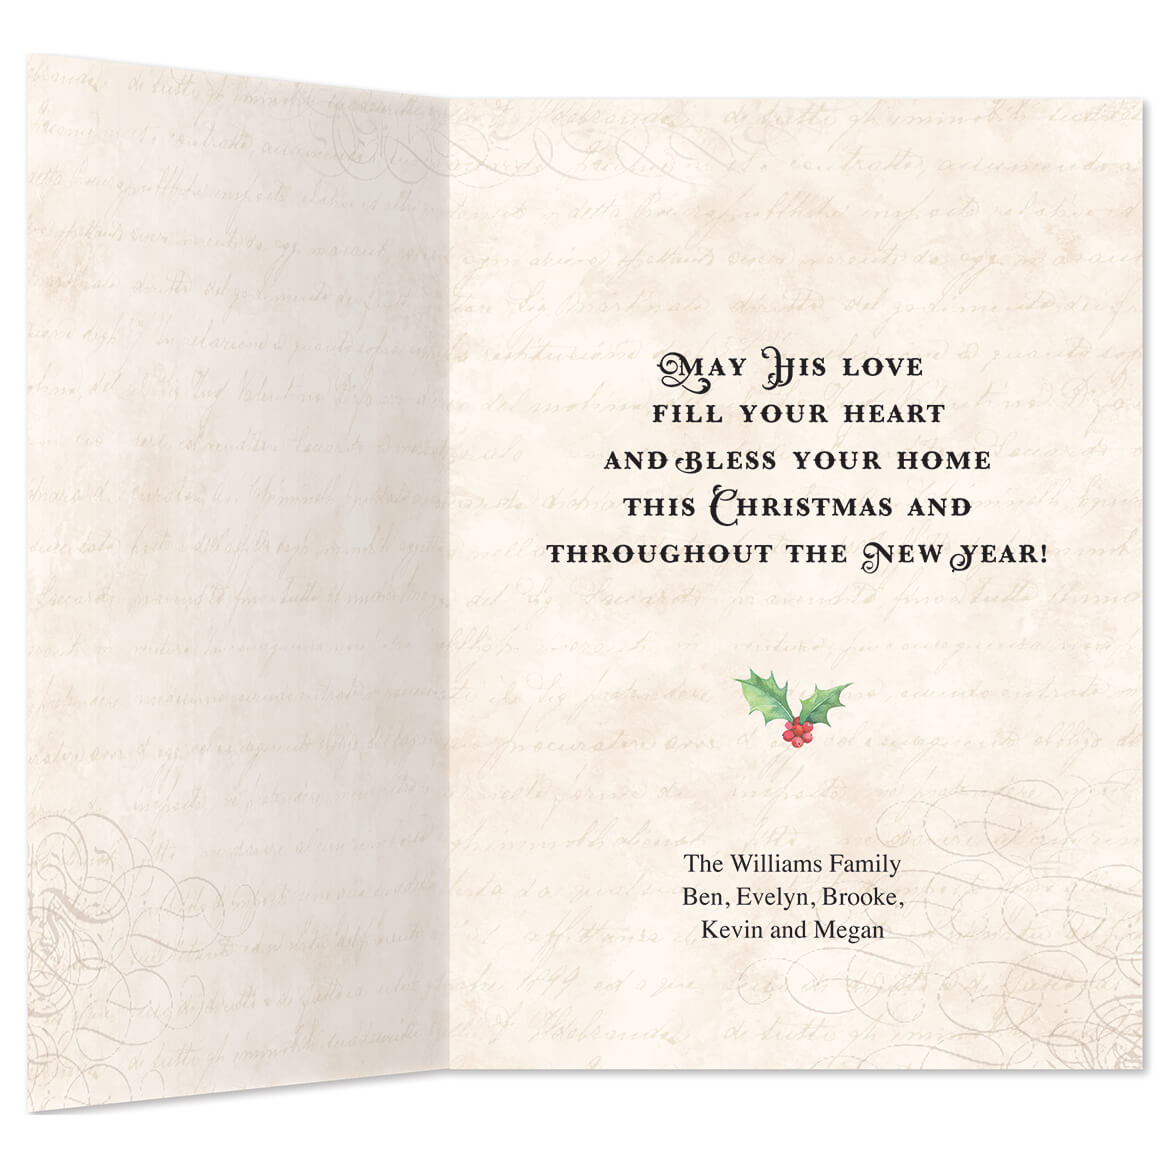 Personalized Good News Christmas Card Set of 20-360171